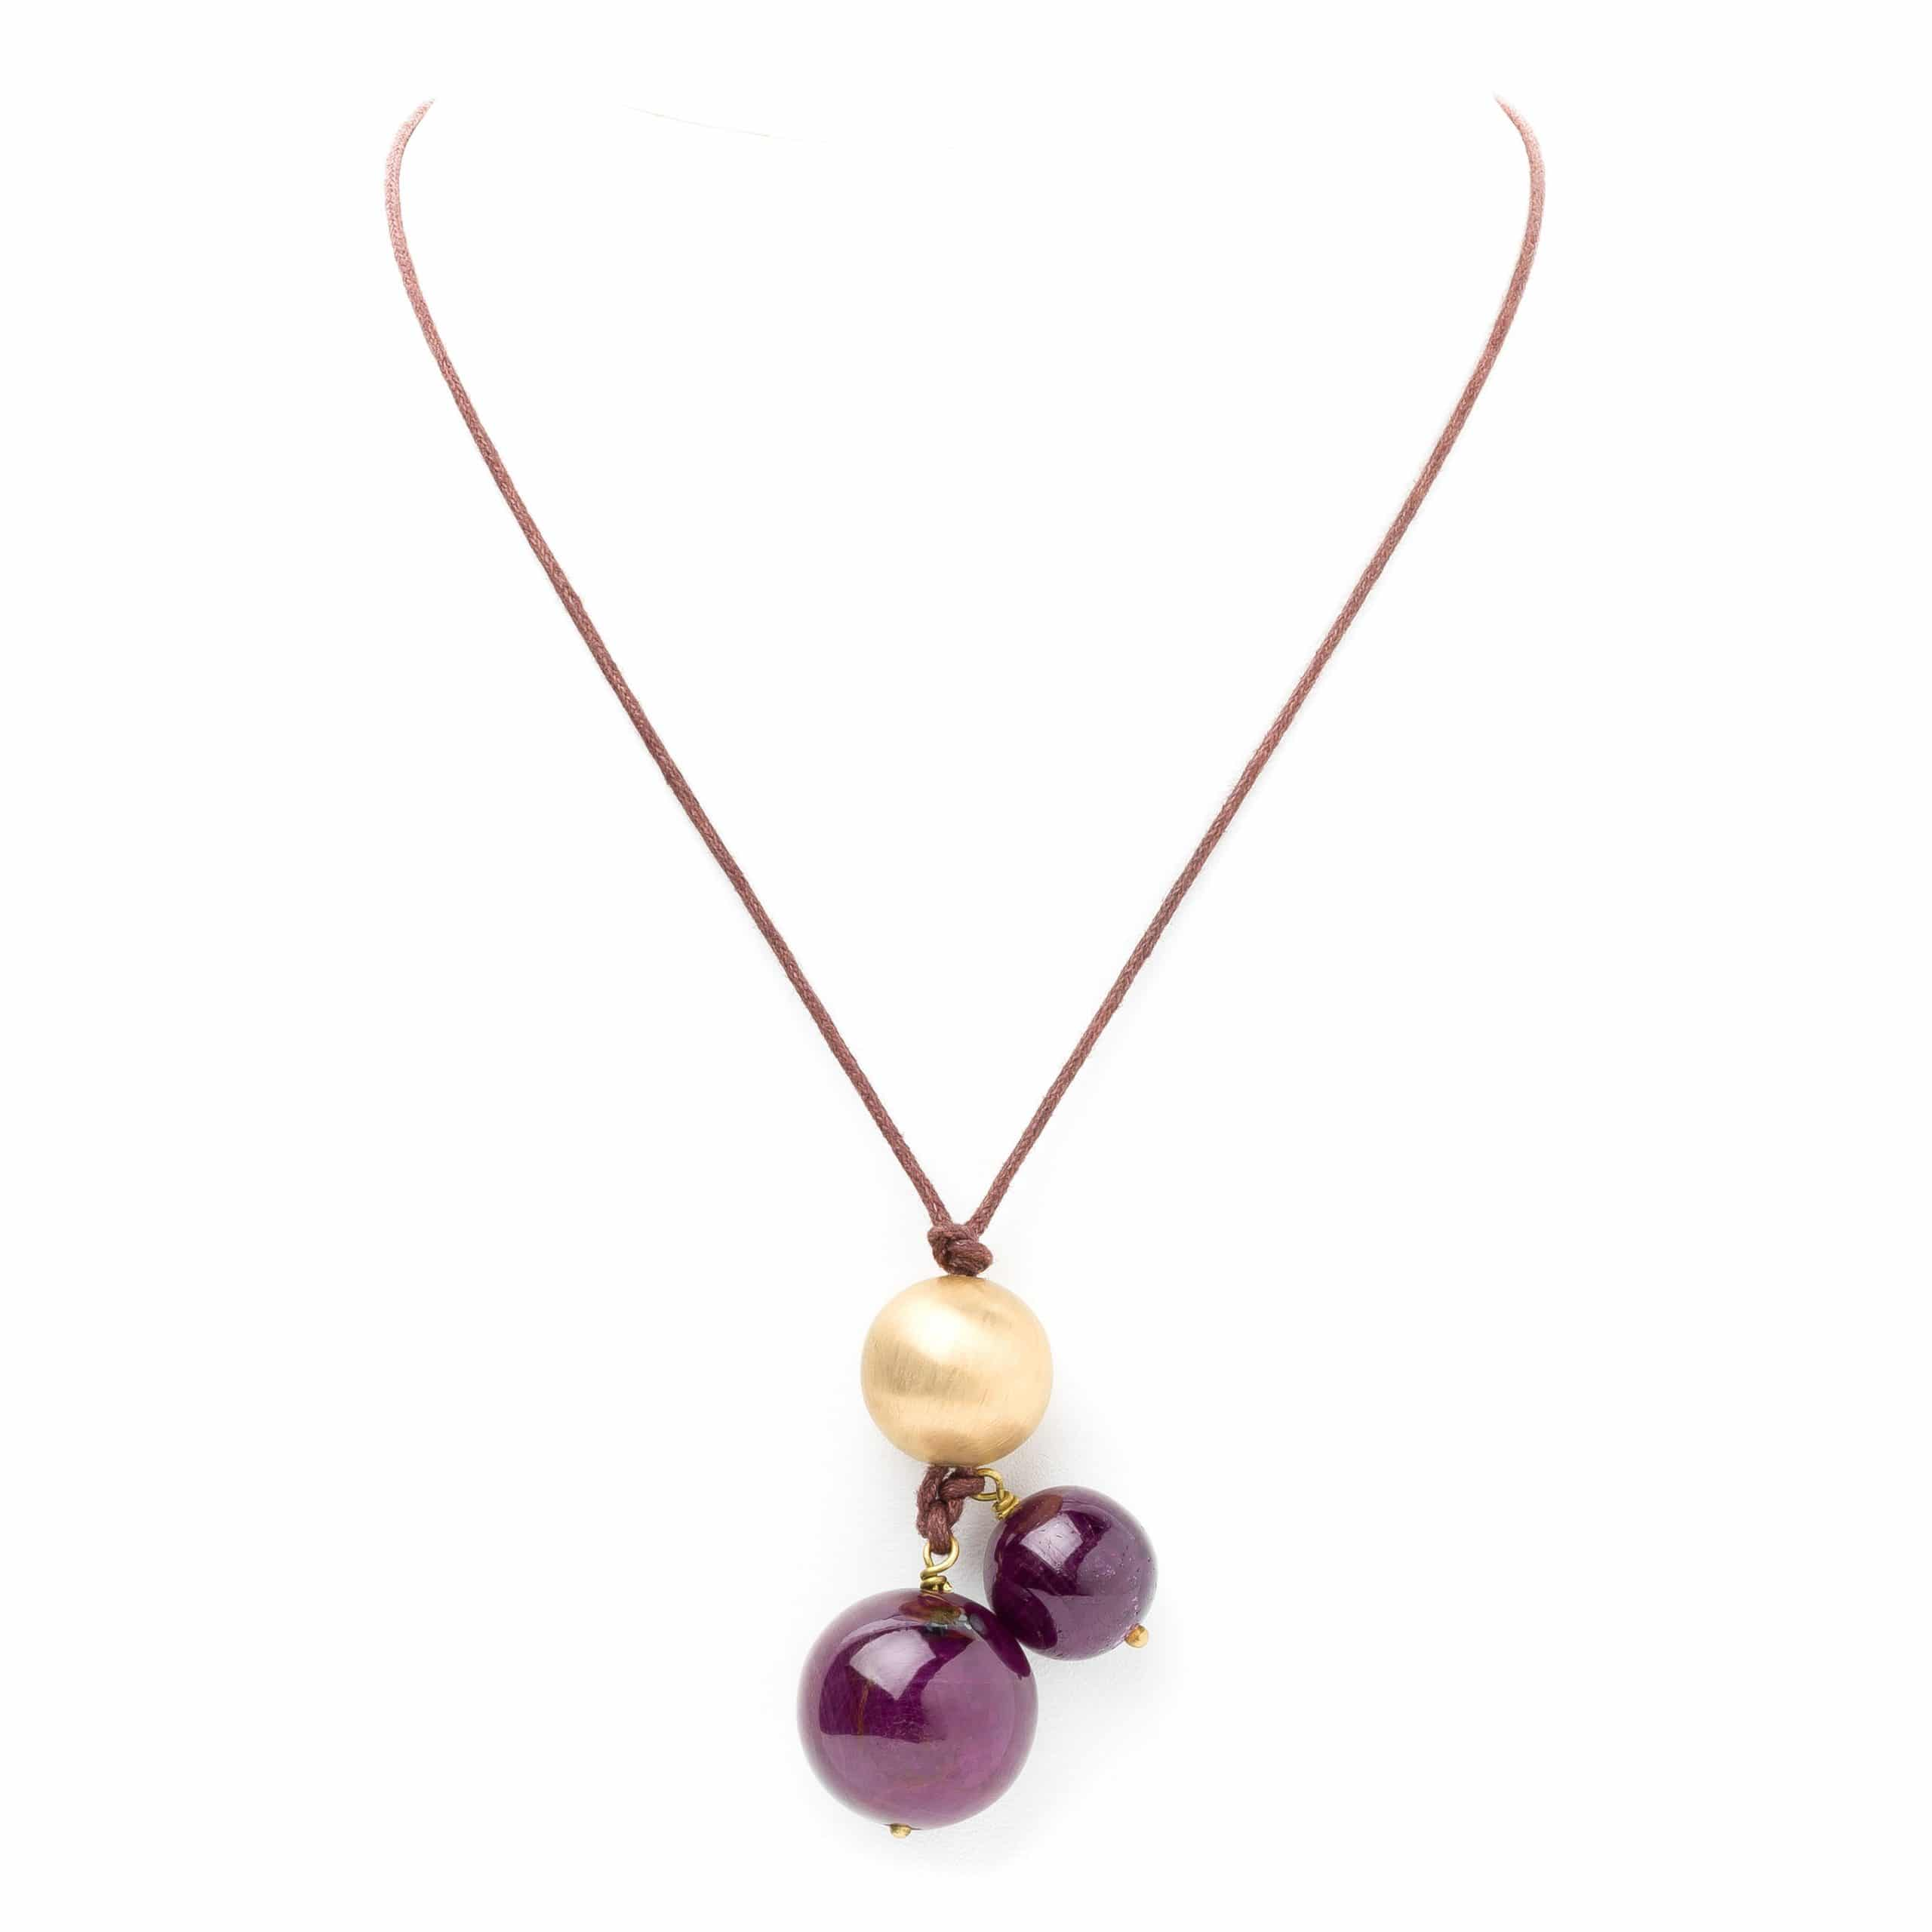 Collier lien boule or-rubis